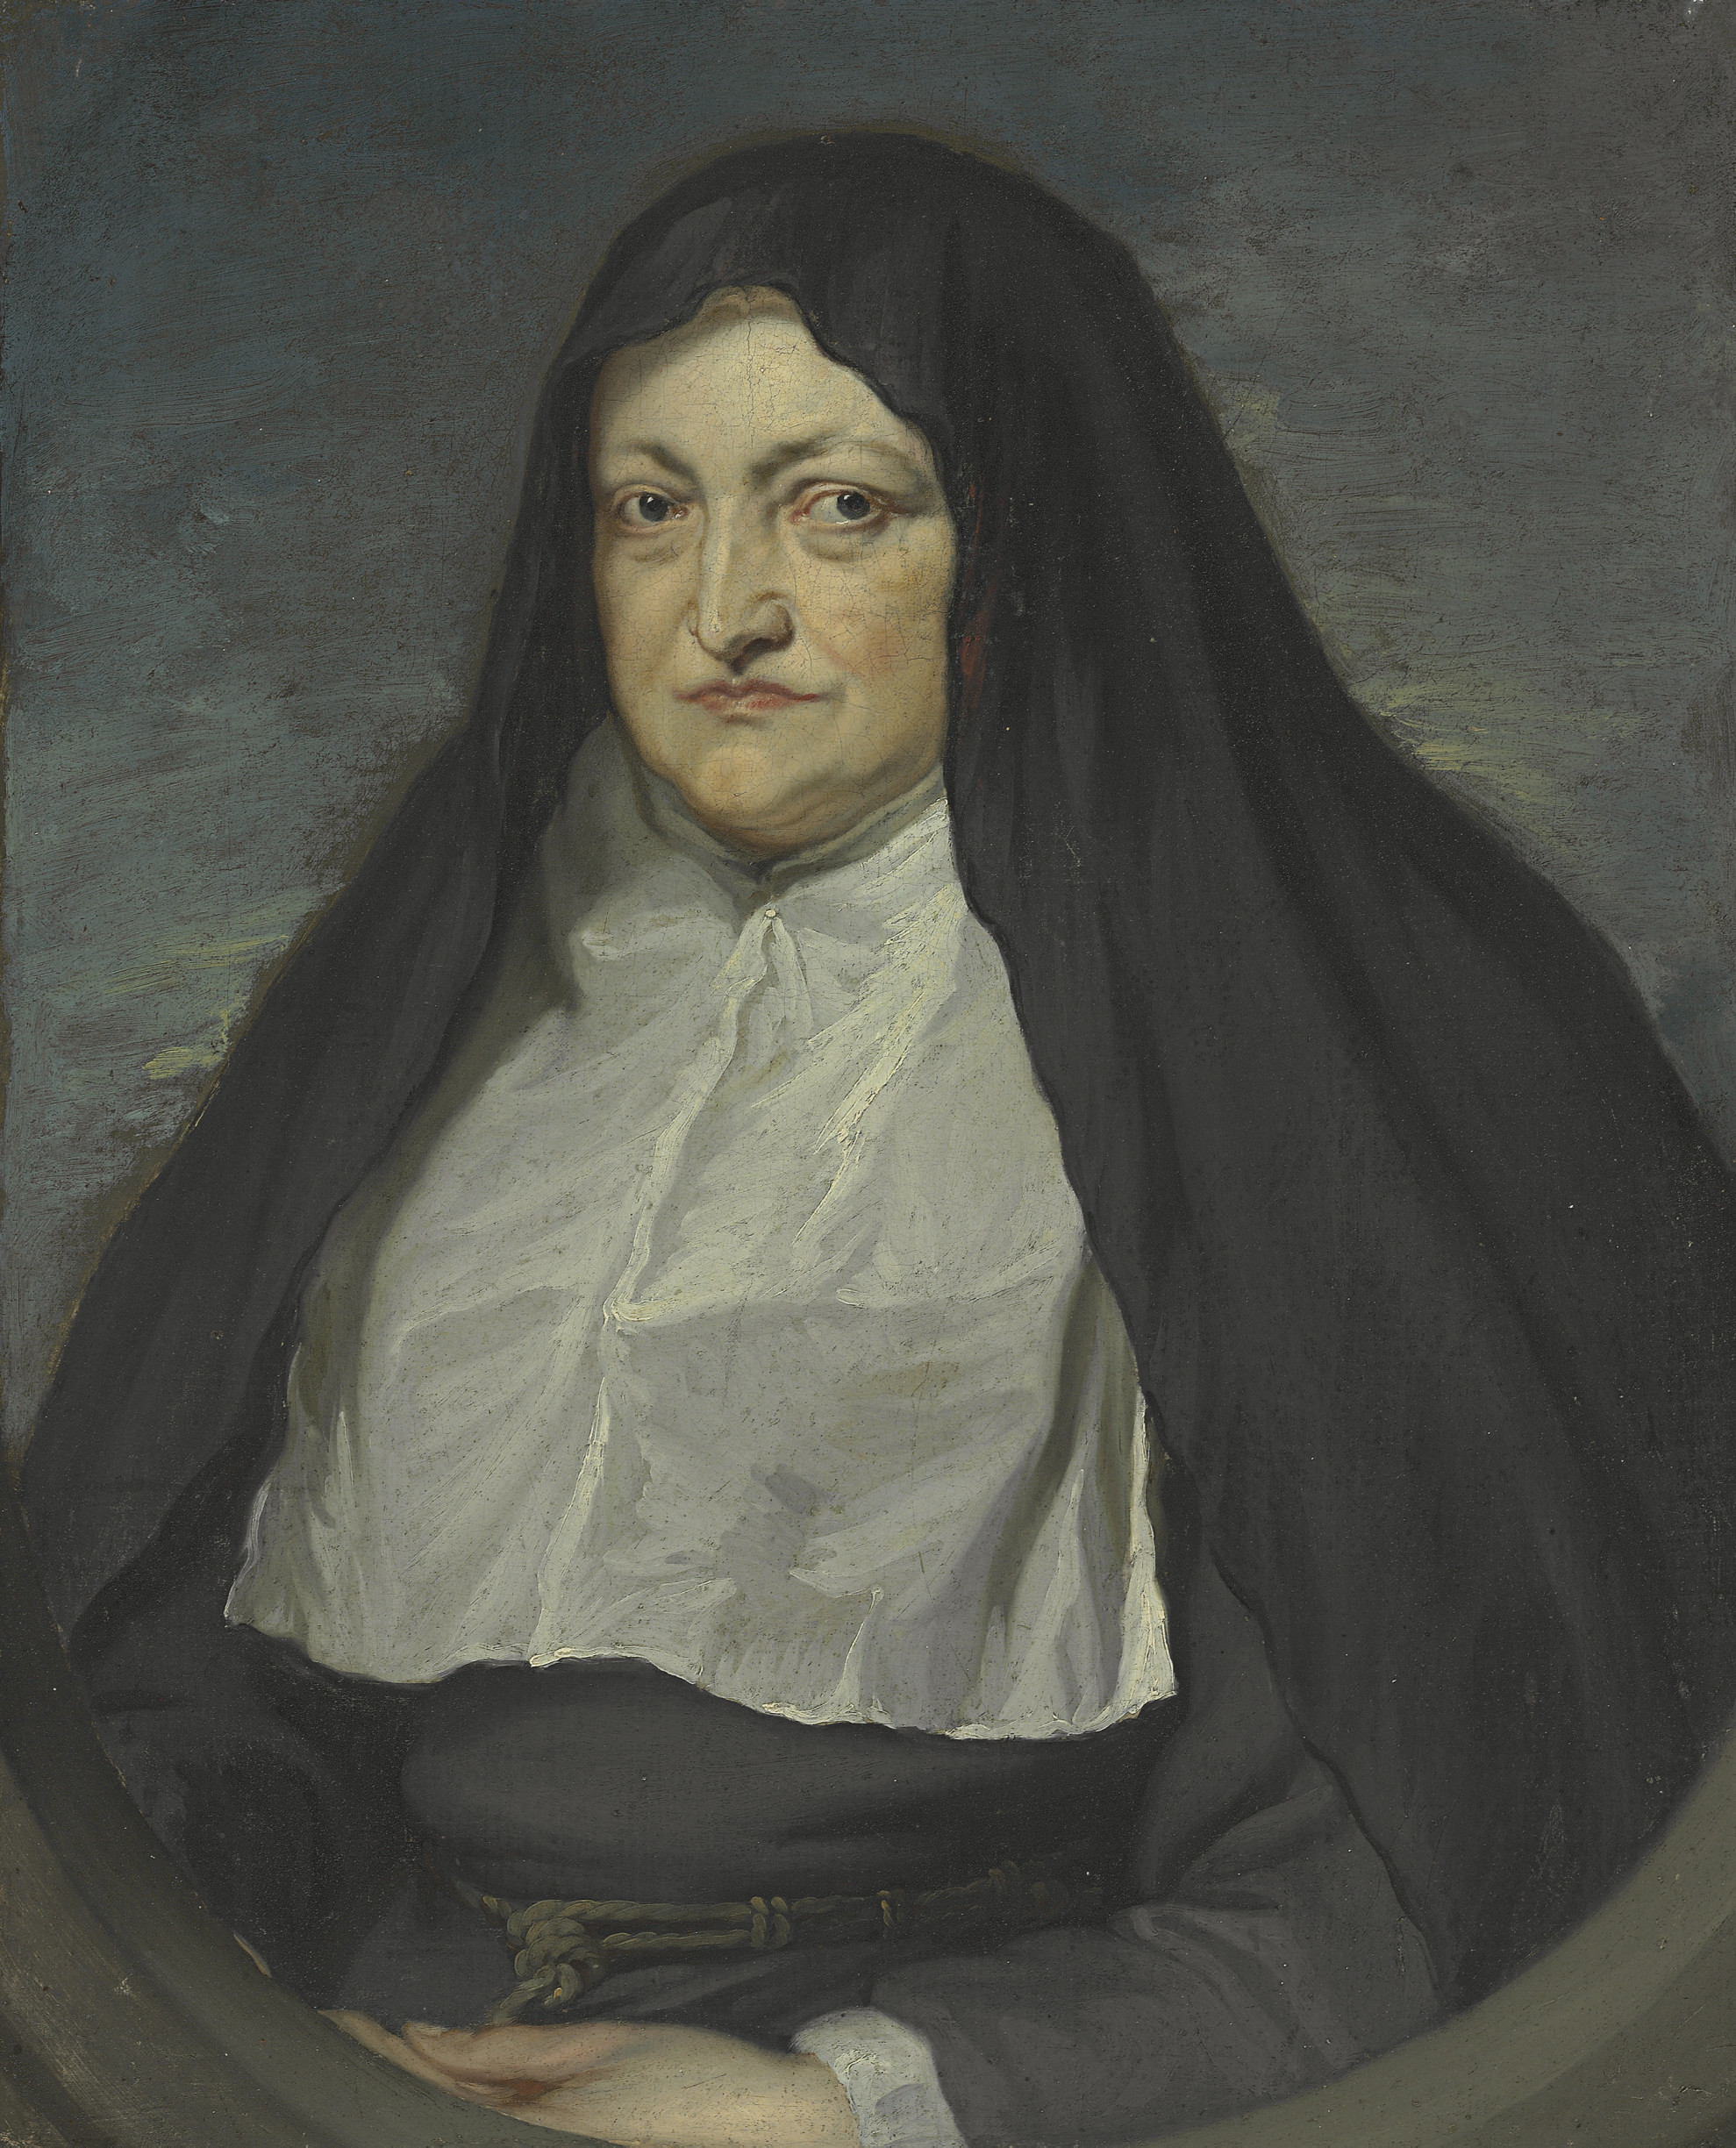 Portrait of Archduchess Isabella Clara Eugenia, Regent of the Southern Netherlands (1566-1633), half-length, as a nun, in a painted oval